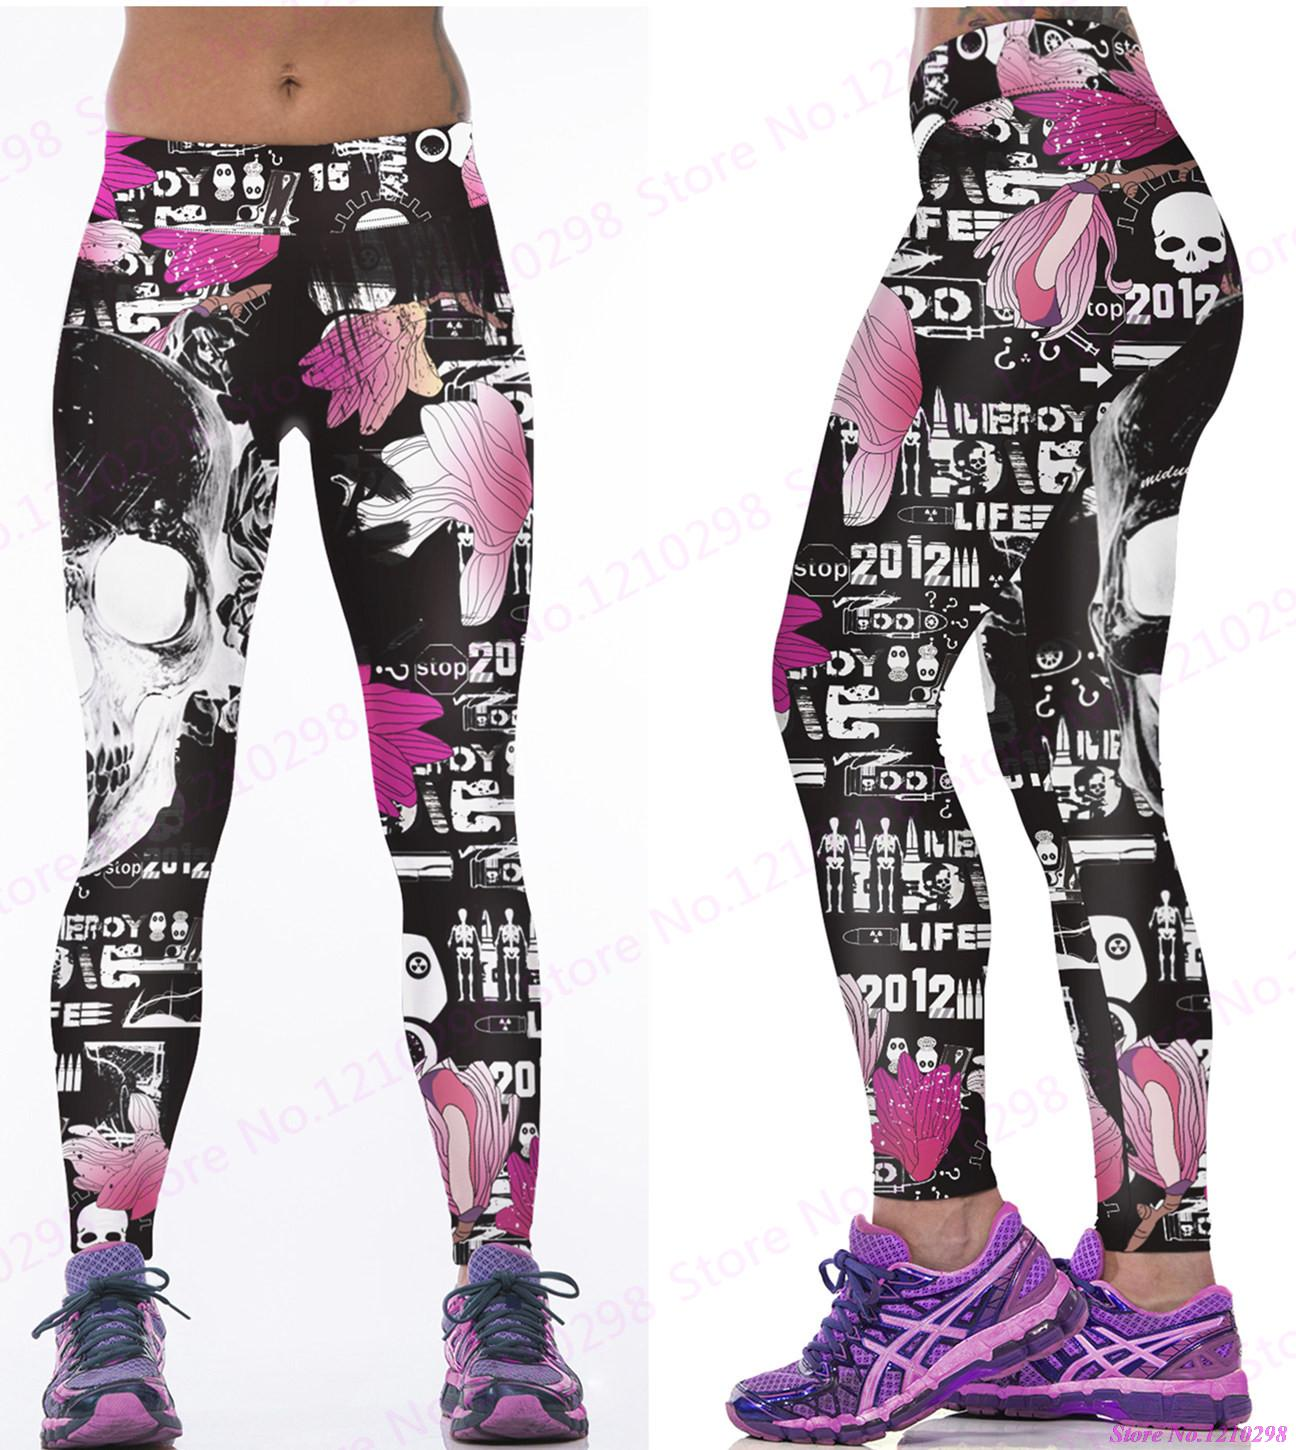 580ea3dae8032 Newest Pink Flowers Running Trousers Skull Leggings Gym Fitness Sports  Jogging Cross Skull Yoga Pants Women Tight 3D Print-in Yoga Pants from  Sports ...